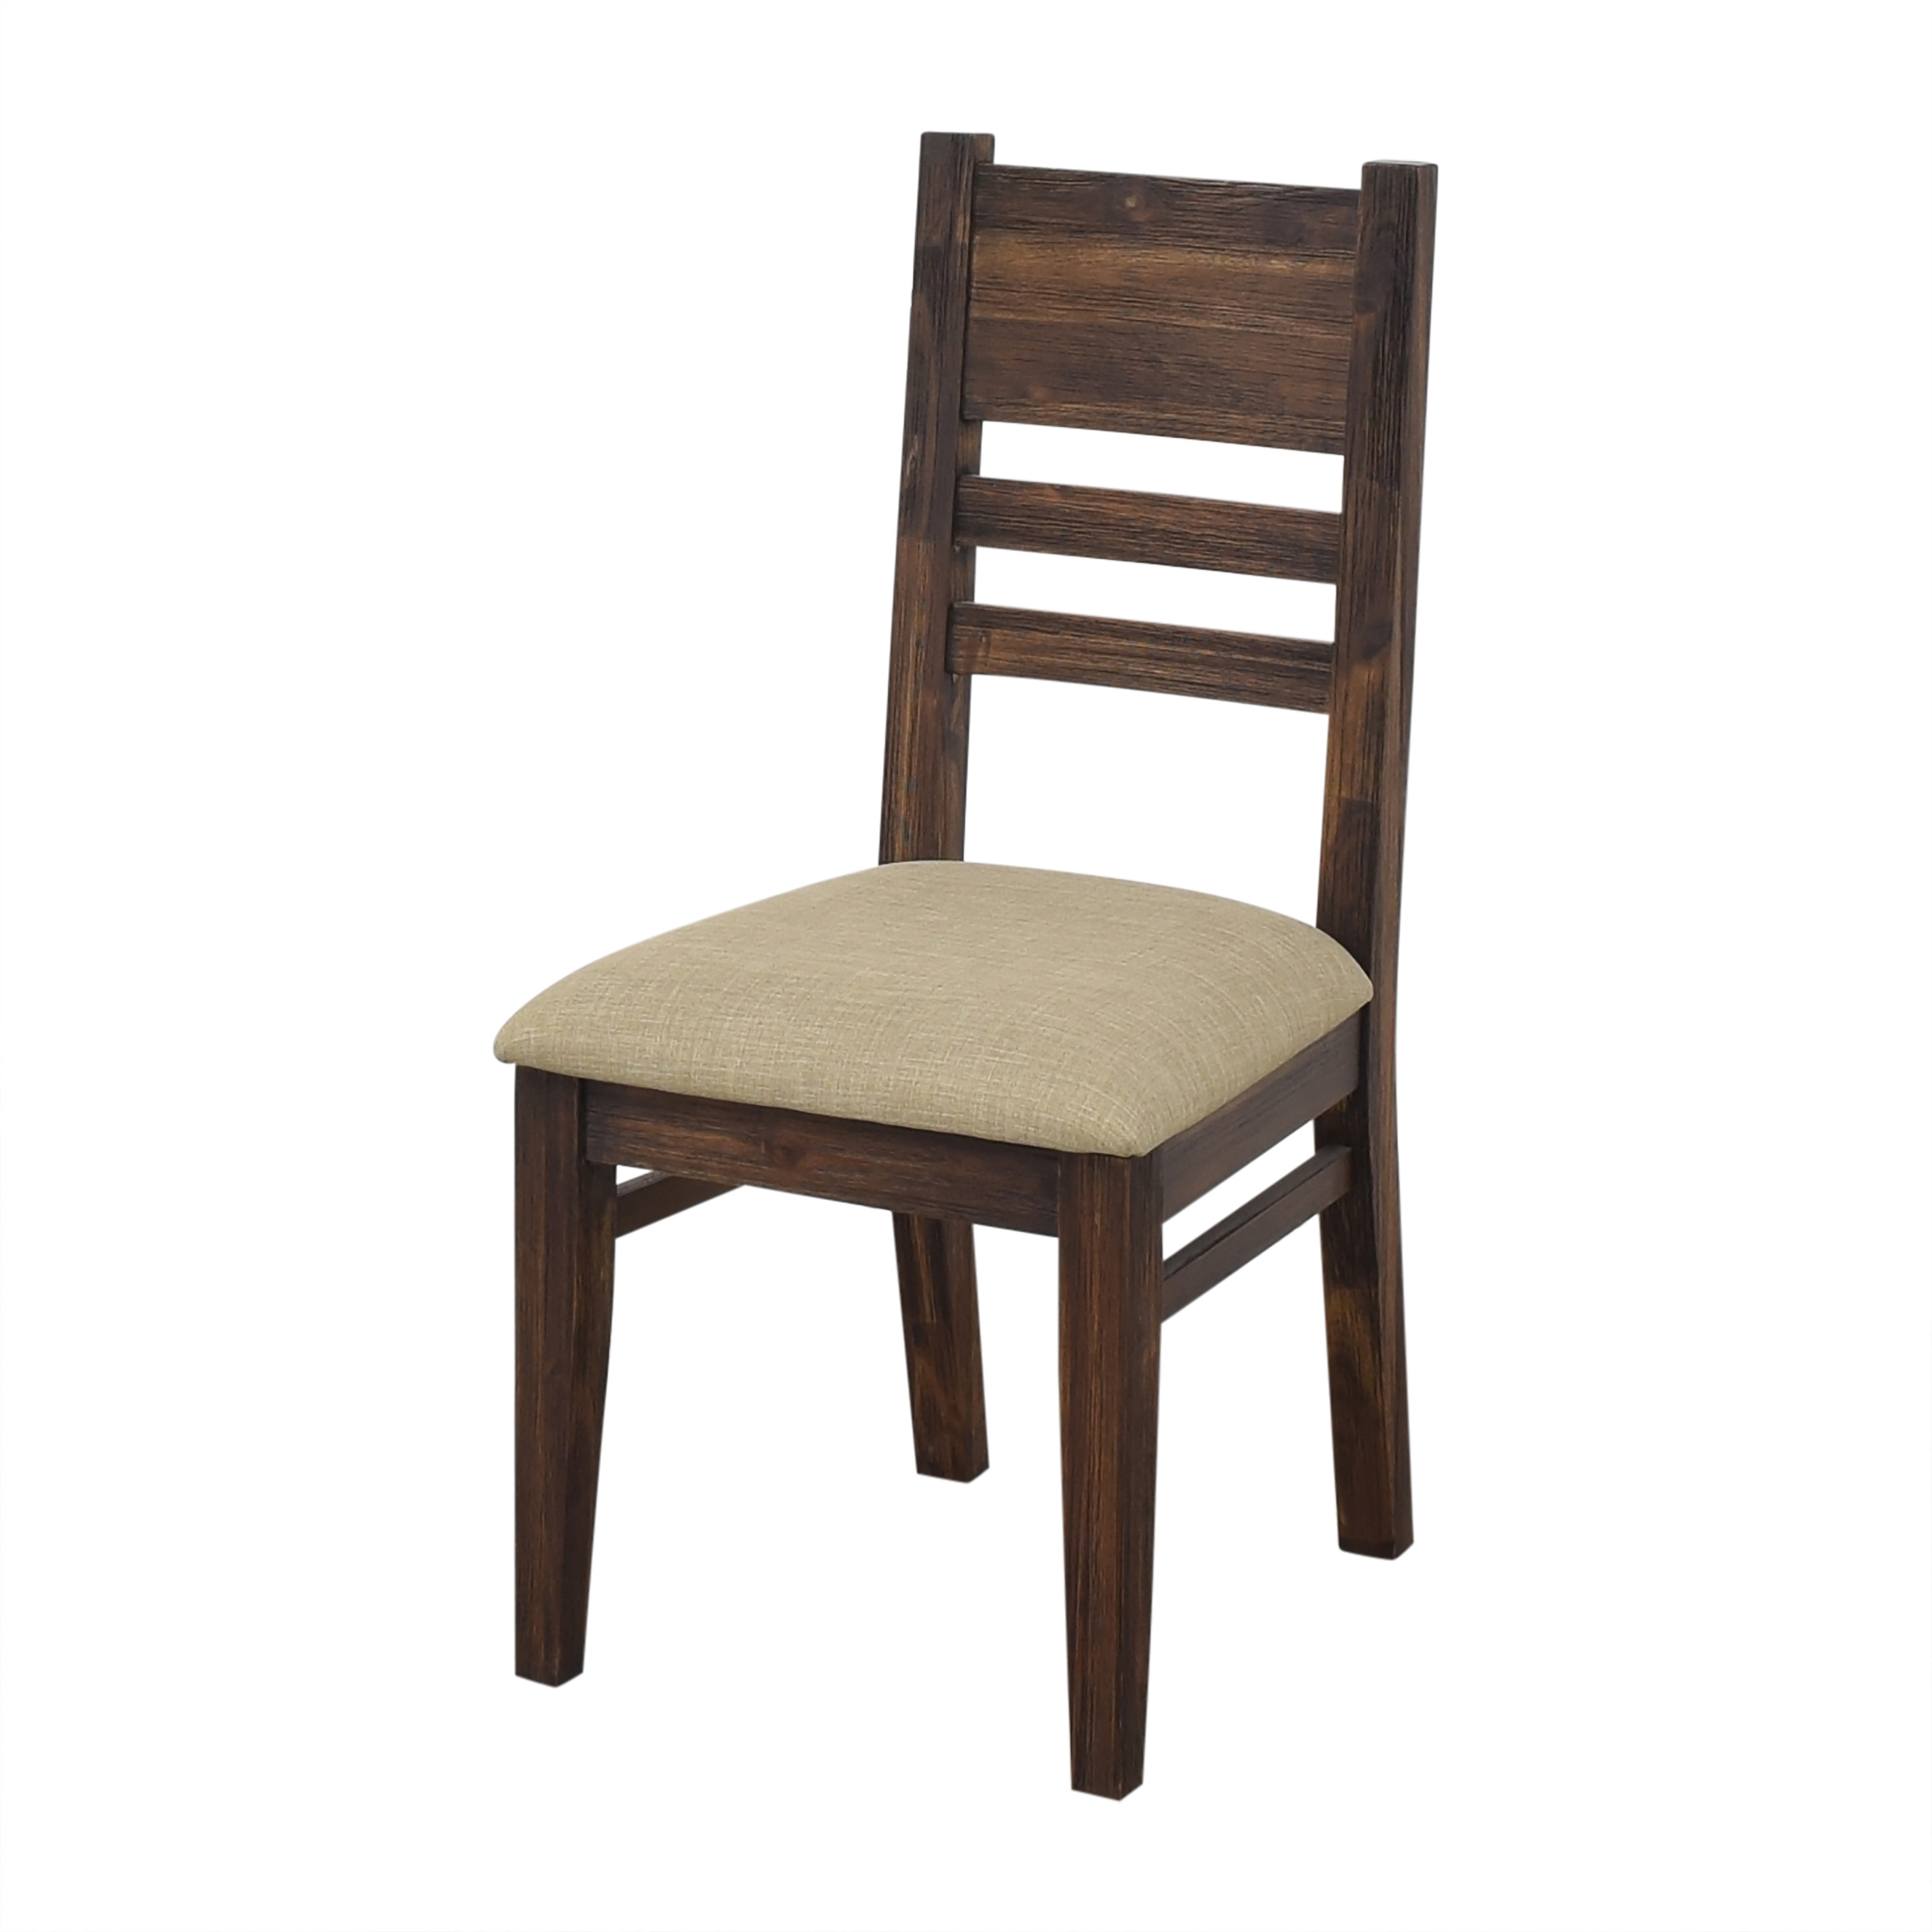 shop Macy's Macy's Avondale Dining Side Chairs online